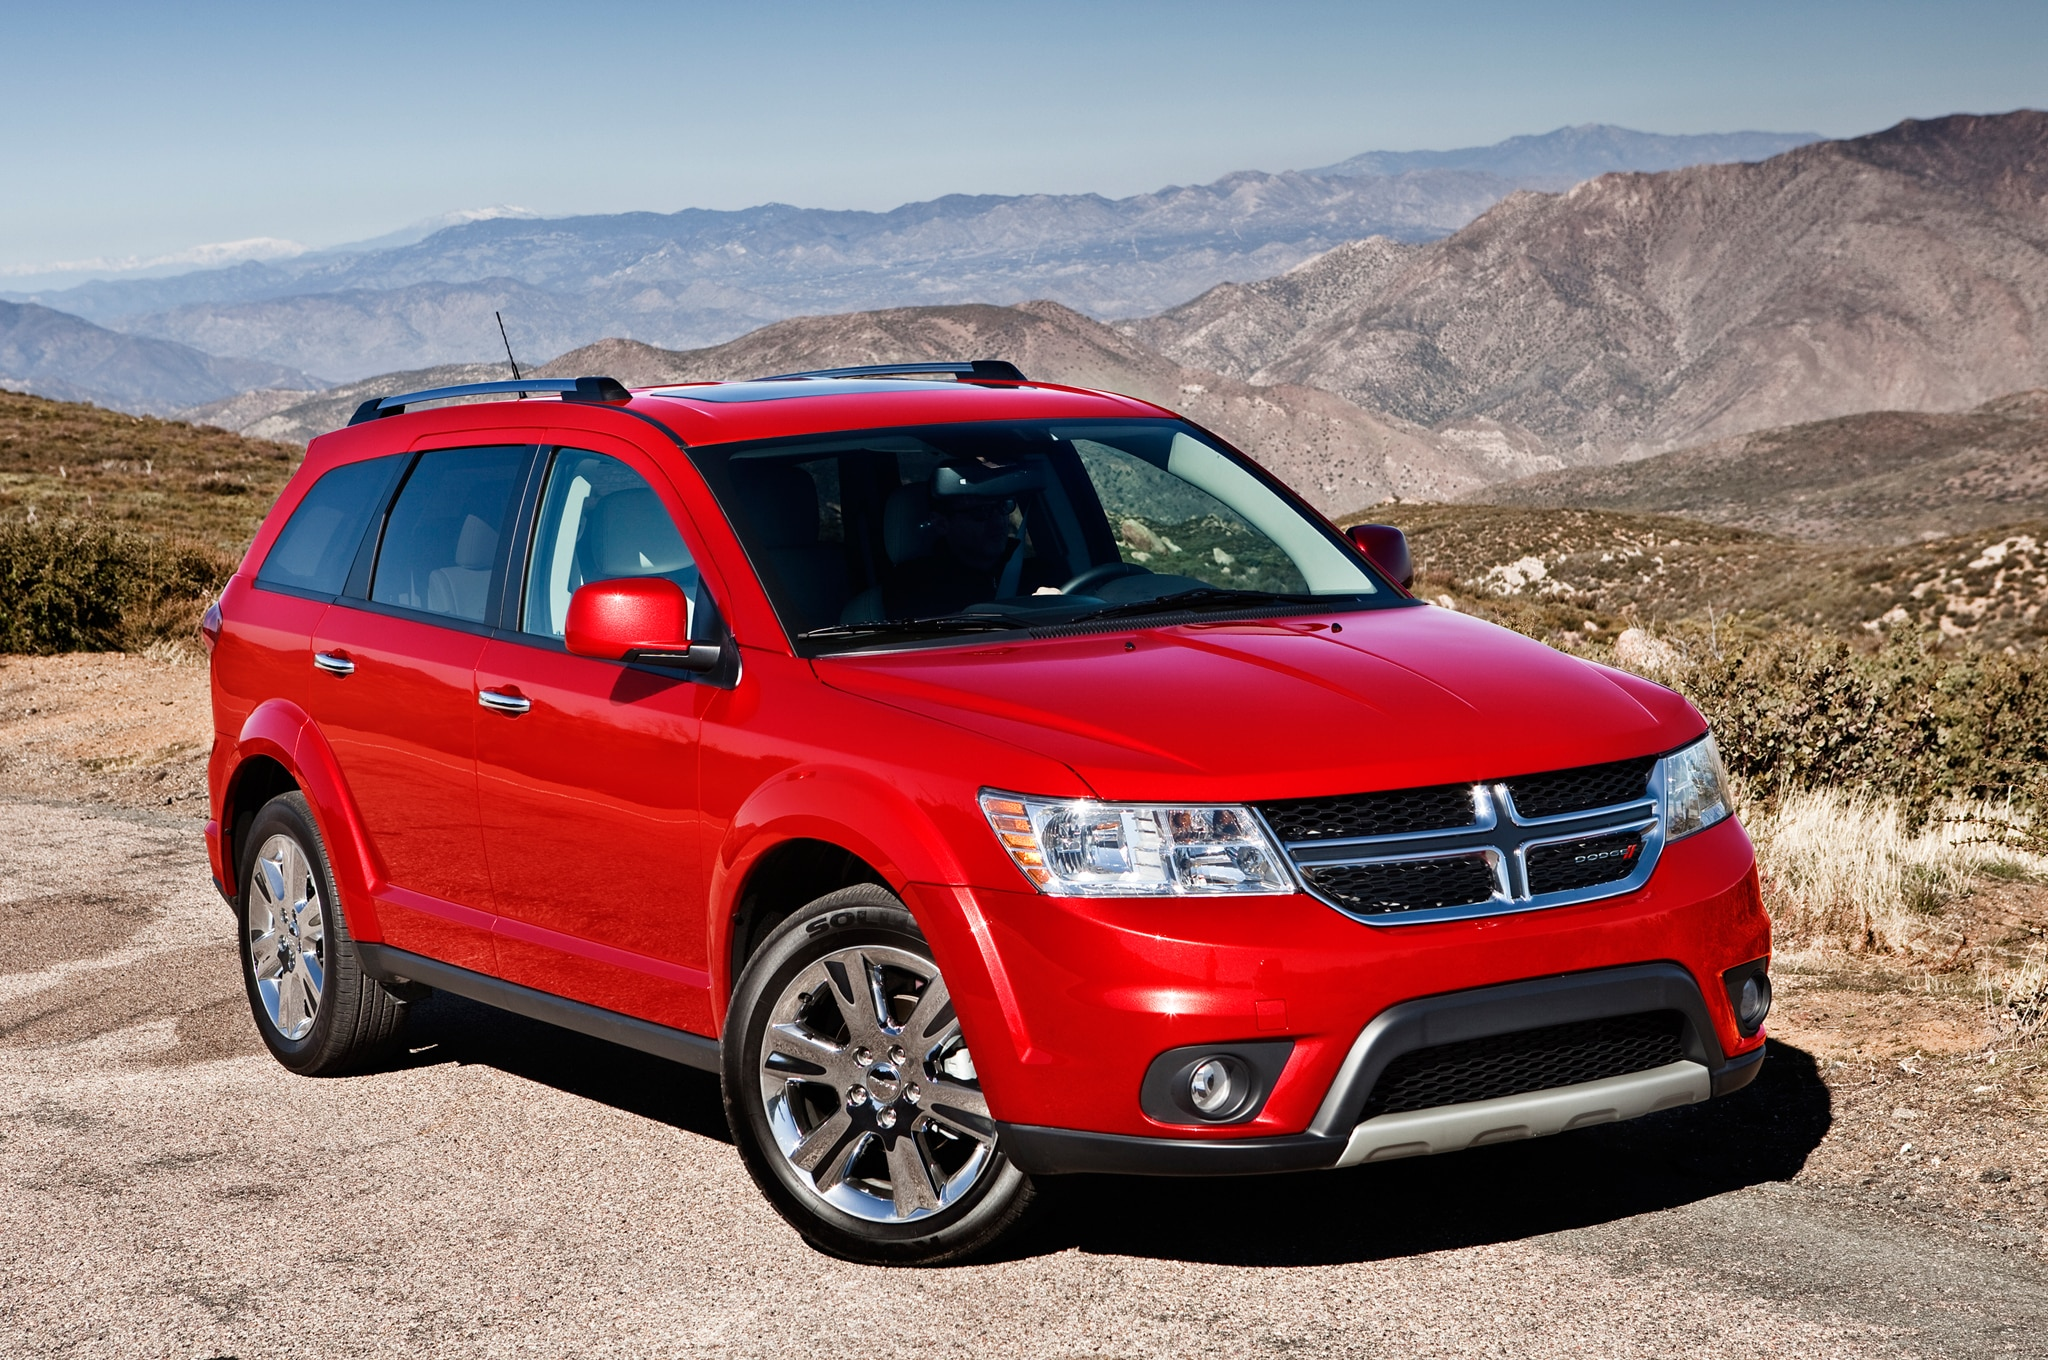 2014 Dodge Journey front three quarters view 2014 dodge journey se v 6 awd priced at $25,890 automobile magazine 2016 dodge journey fuse box diagram at reclaimingppi.co